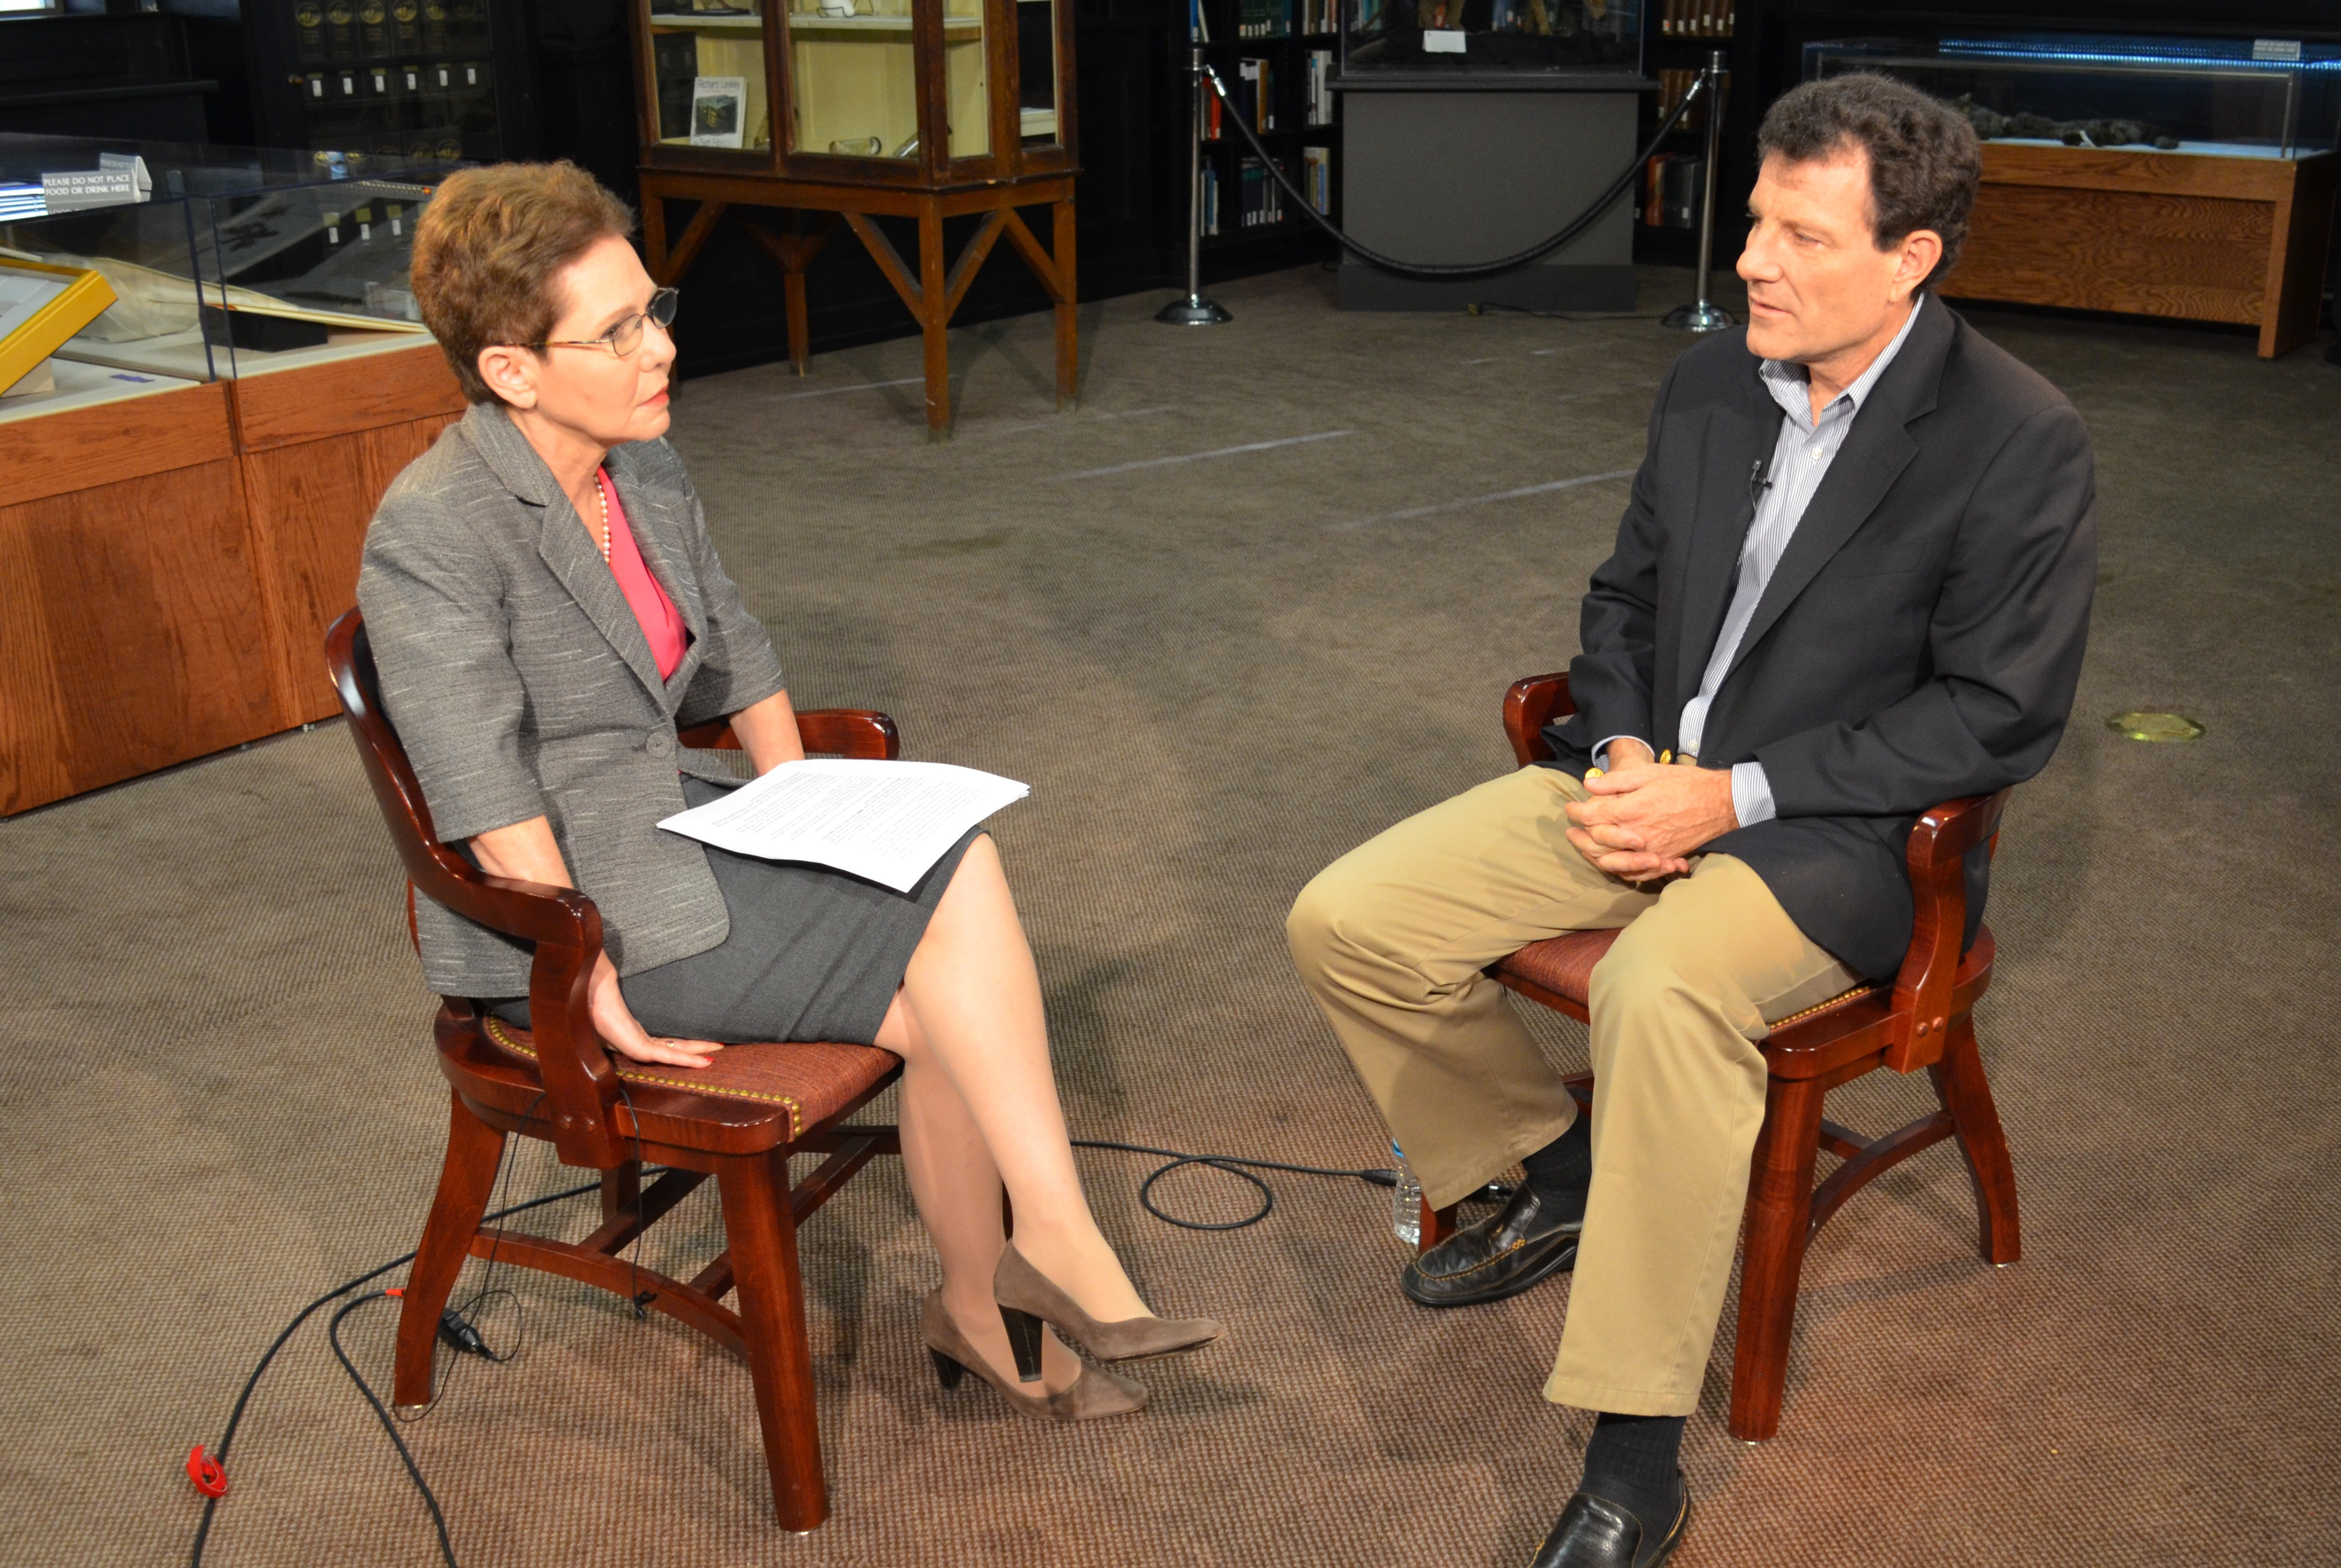 Dean Paula Cohen speaking with Nicholas Kristof at the National Constitution Center.